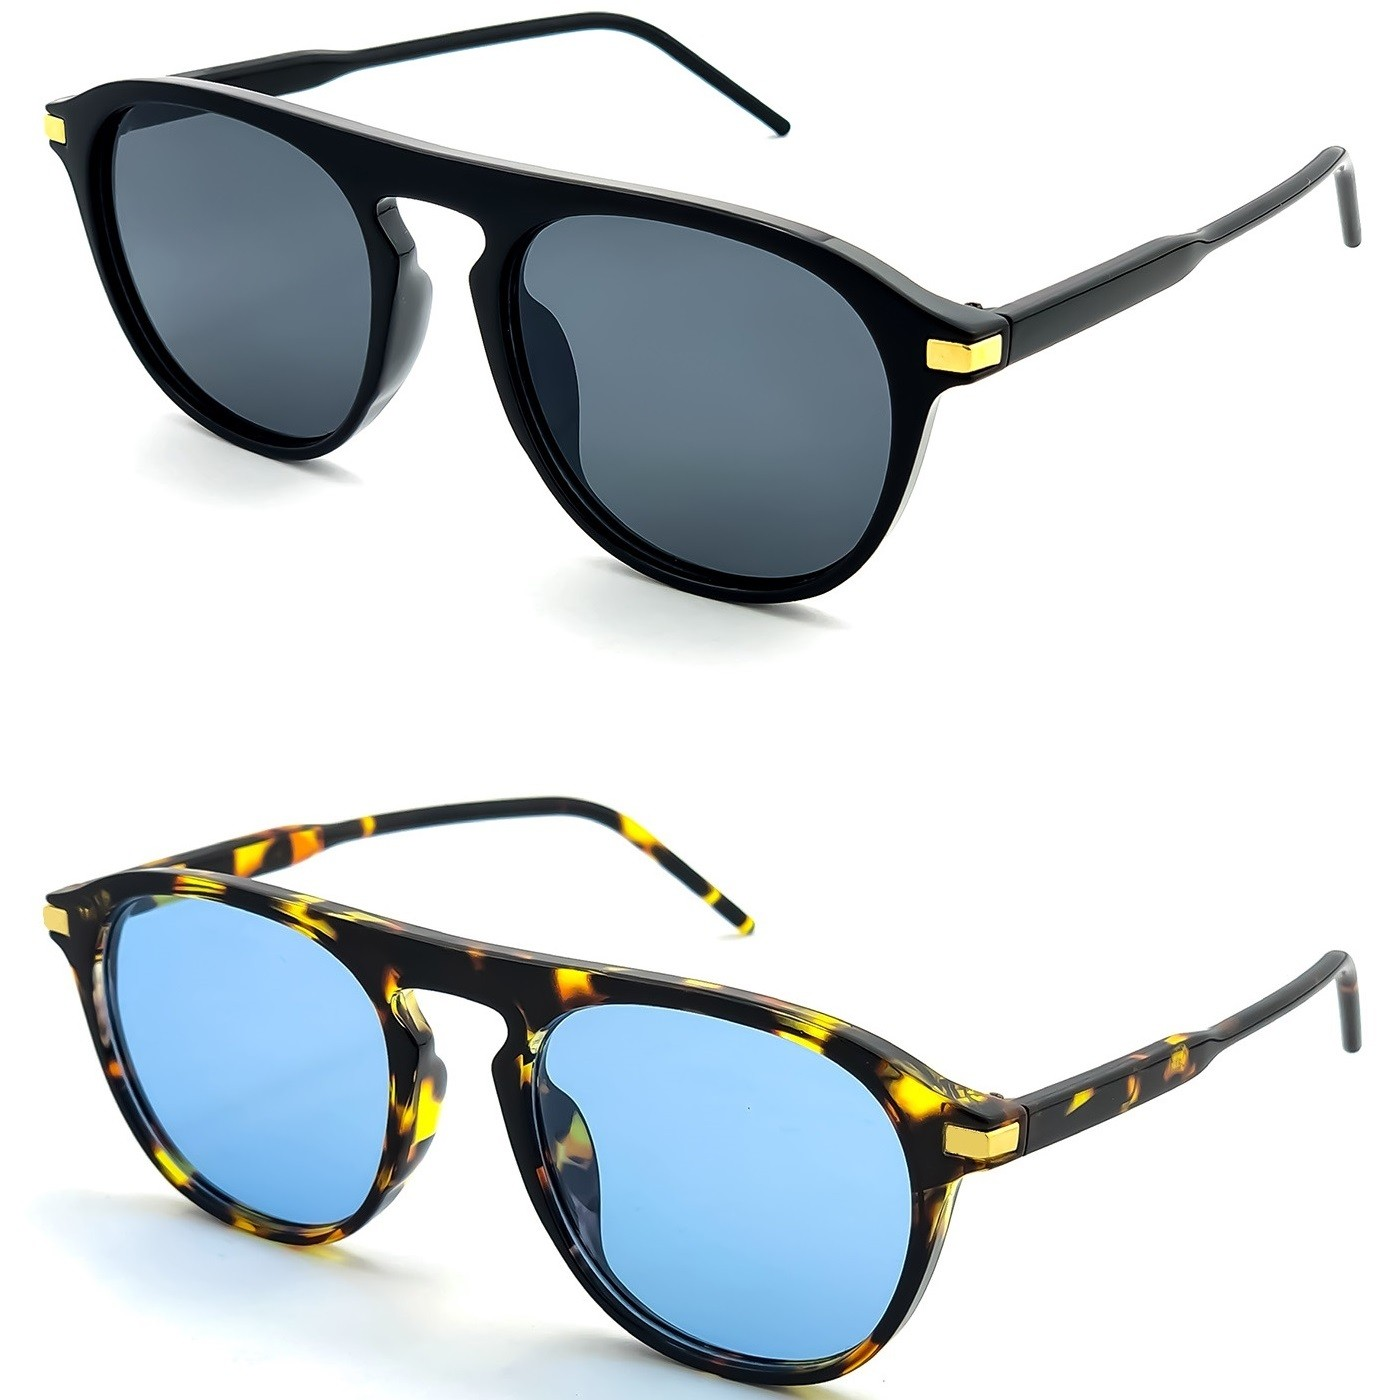 Sunglasses KISS® - Fashion mod. PHOENIX - man woman EXCLUSIVE vintage aviator COOL FLAT